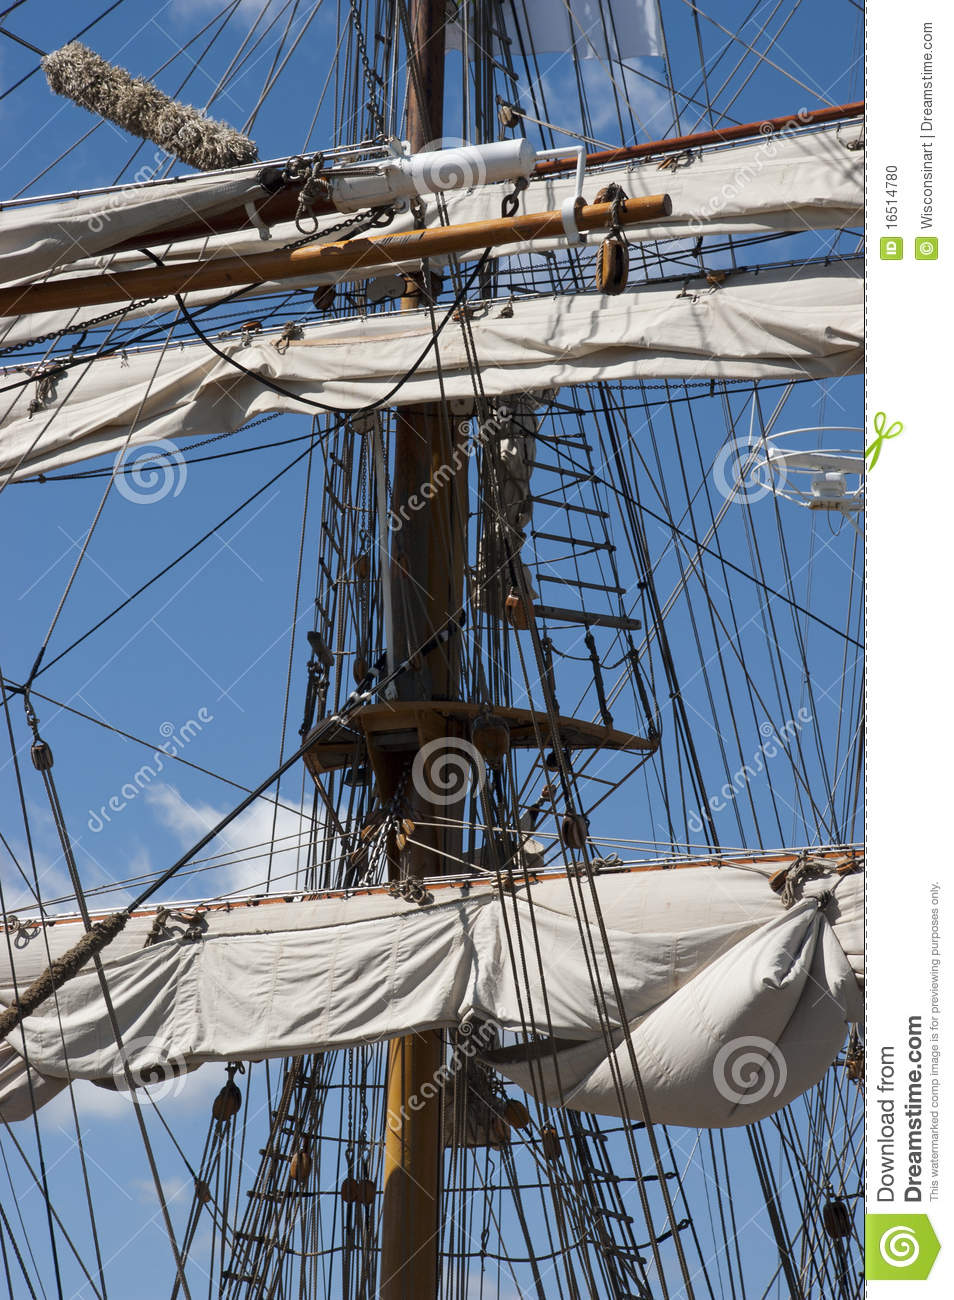 Tall Sailing Ship, Closeup Detail of Mast, Sails